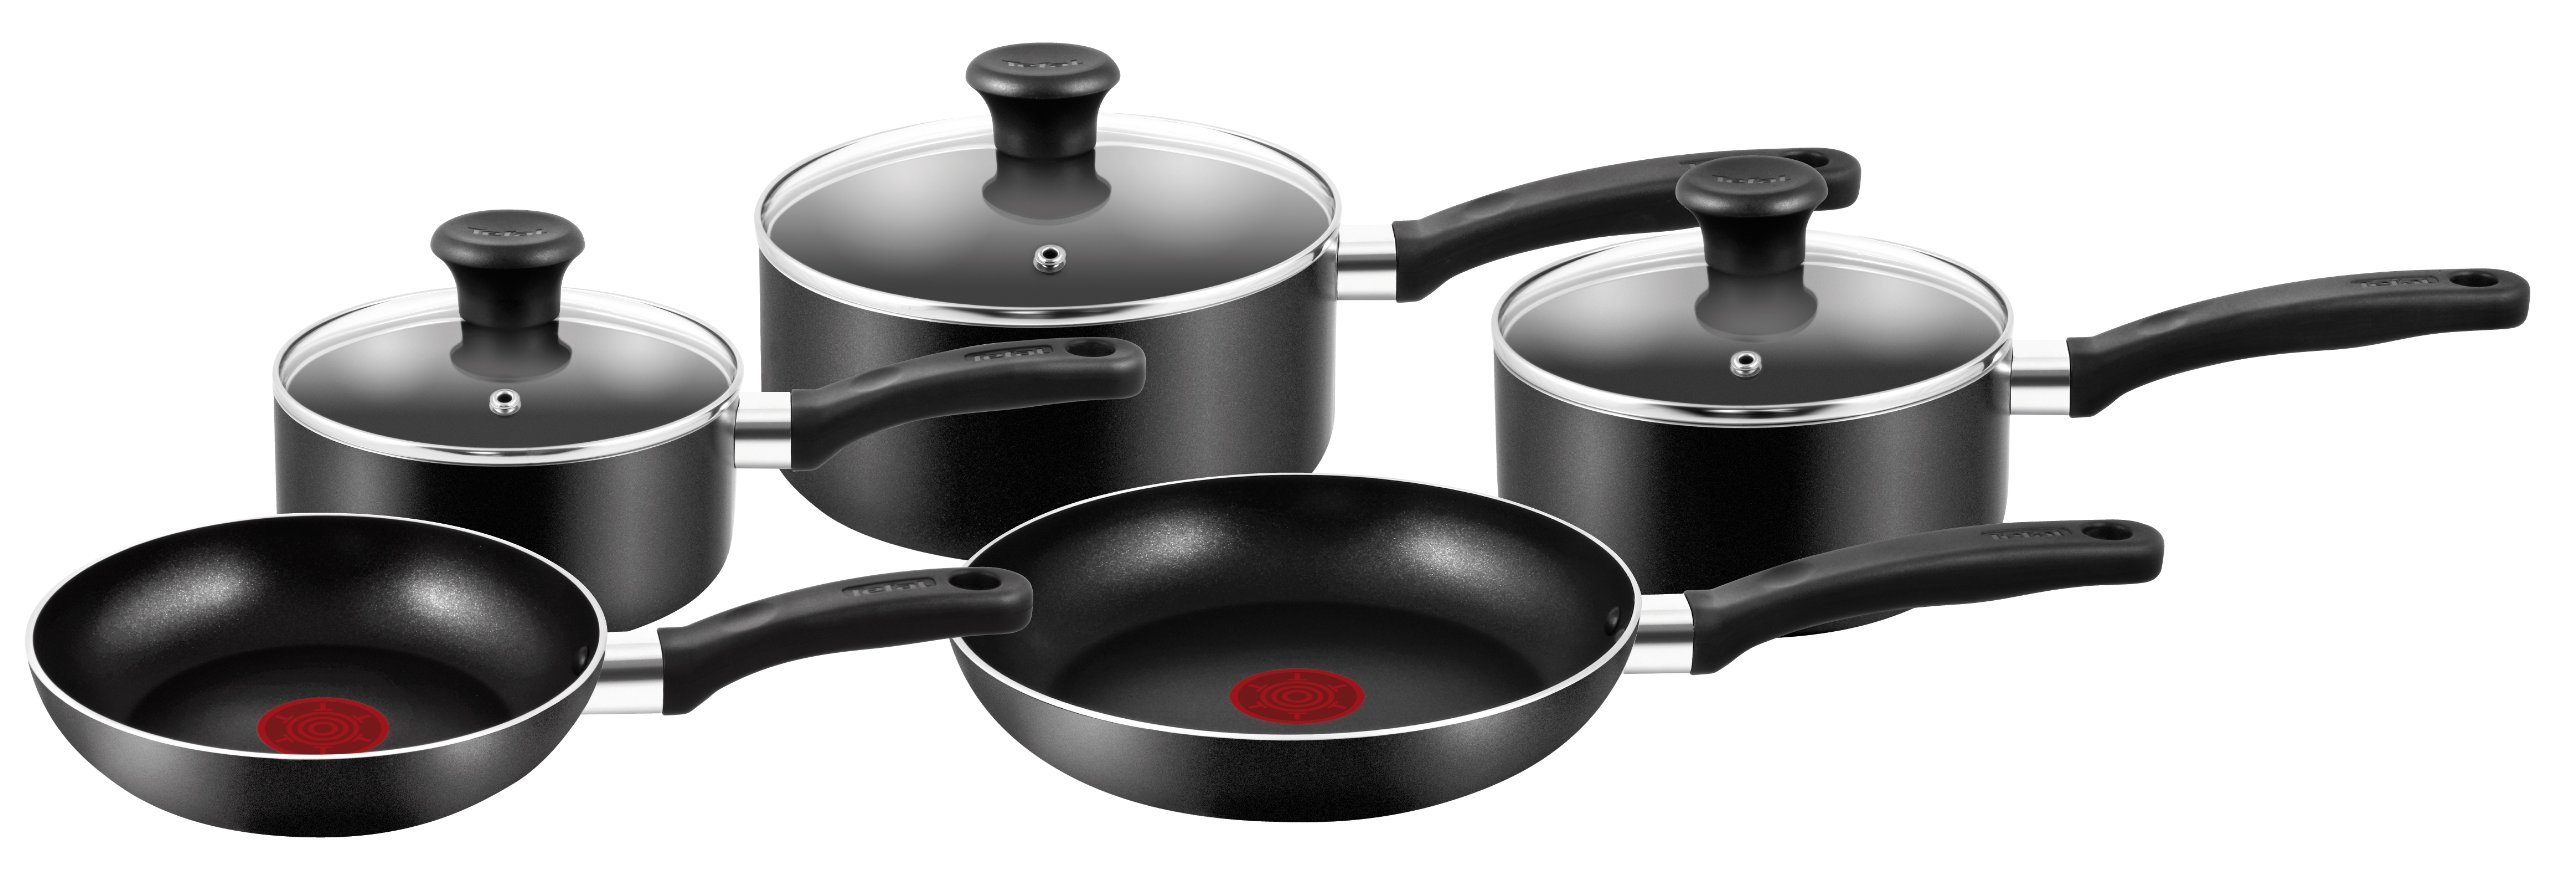 tefal 5 piece essential cookware set black. Black Bedroom Furniture Sets. Home Design Ideas